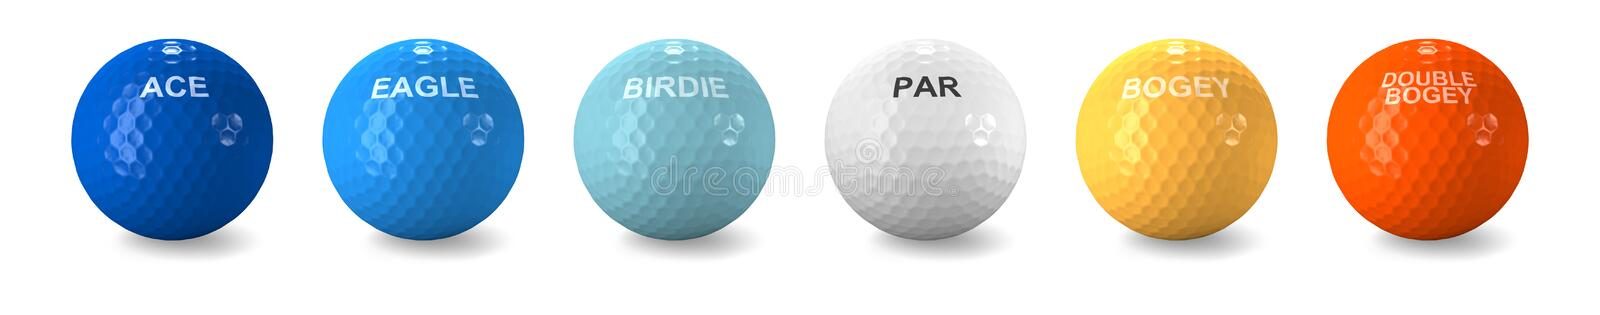 Download Golf Balls Colored For Typical Stroke Scores Stock Illustration - Image: 16693768